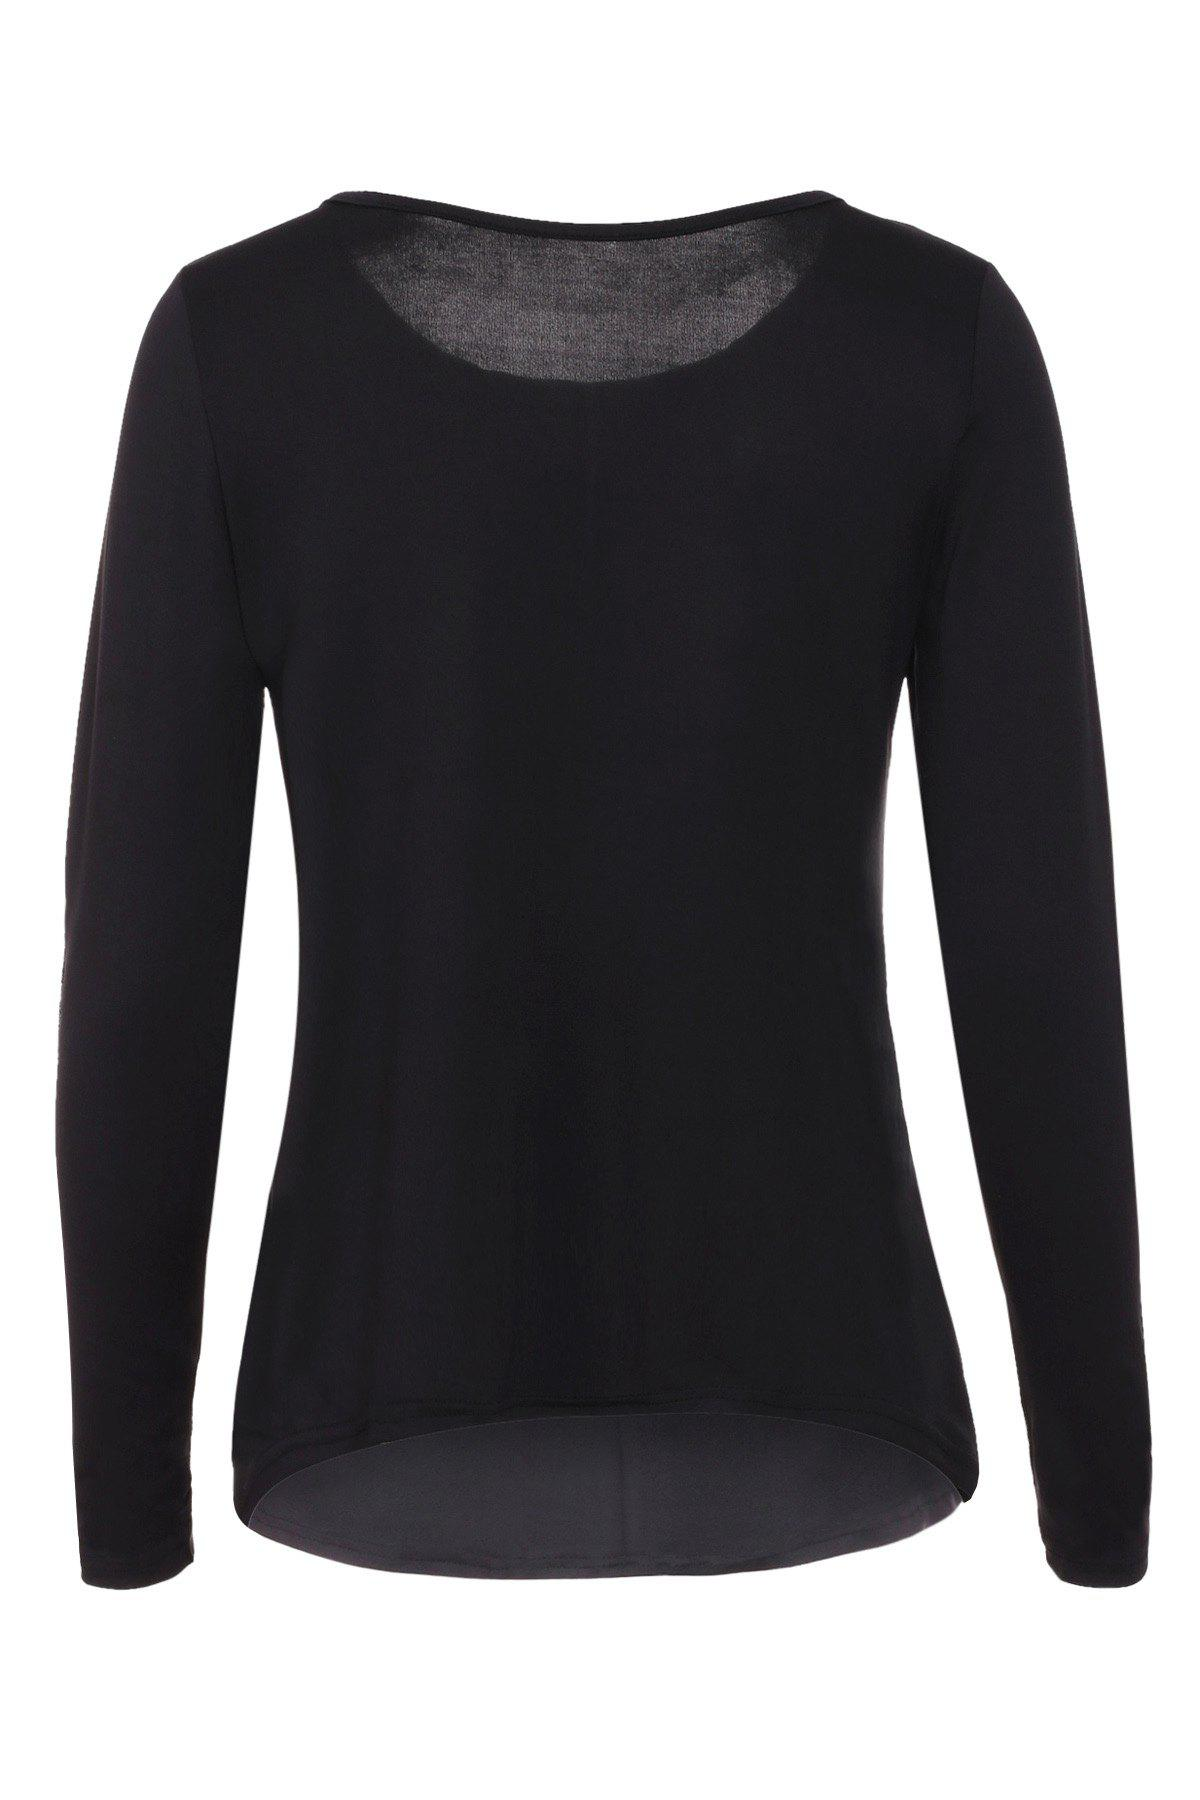 Graceful Jewel Neck Sequin Splicing Long Sleeve Blouse For Women - BLACK XL